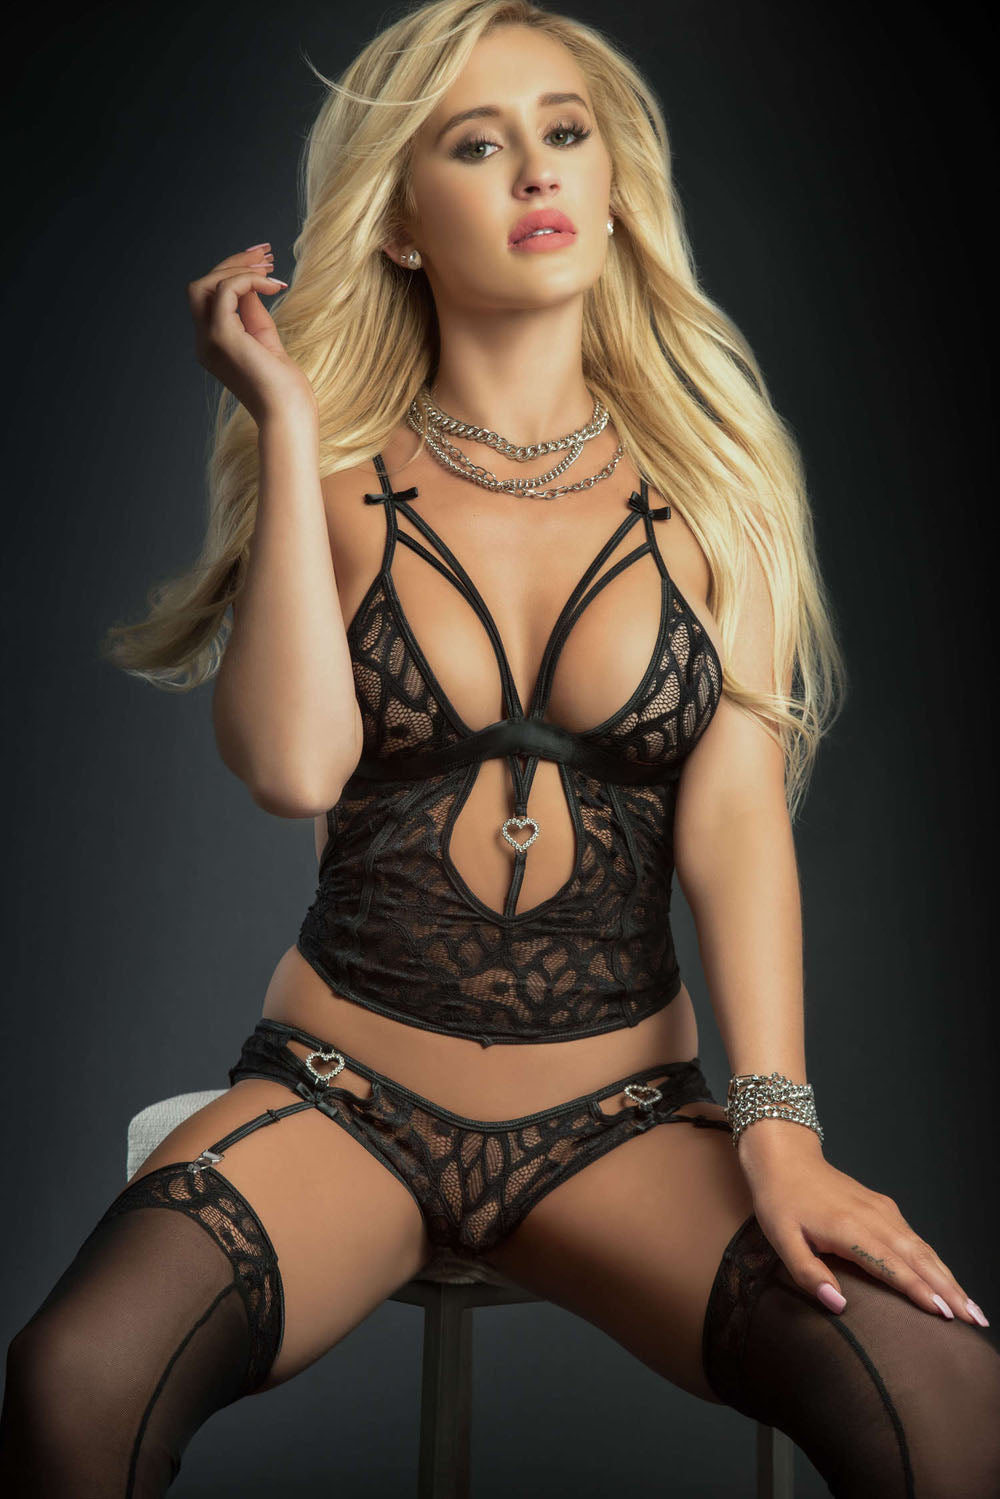 3pc Plunge Cami Top and Brazilian Garter Panty and Stockings - One Size - Black - G-World -  Los Angeles Lingerie